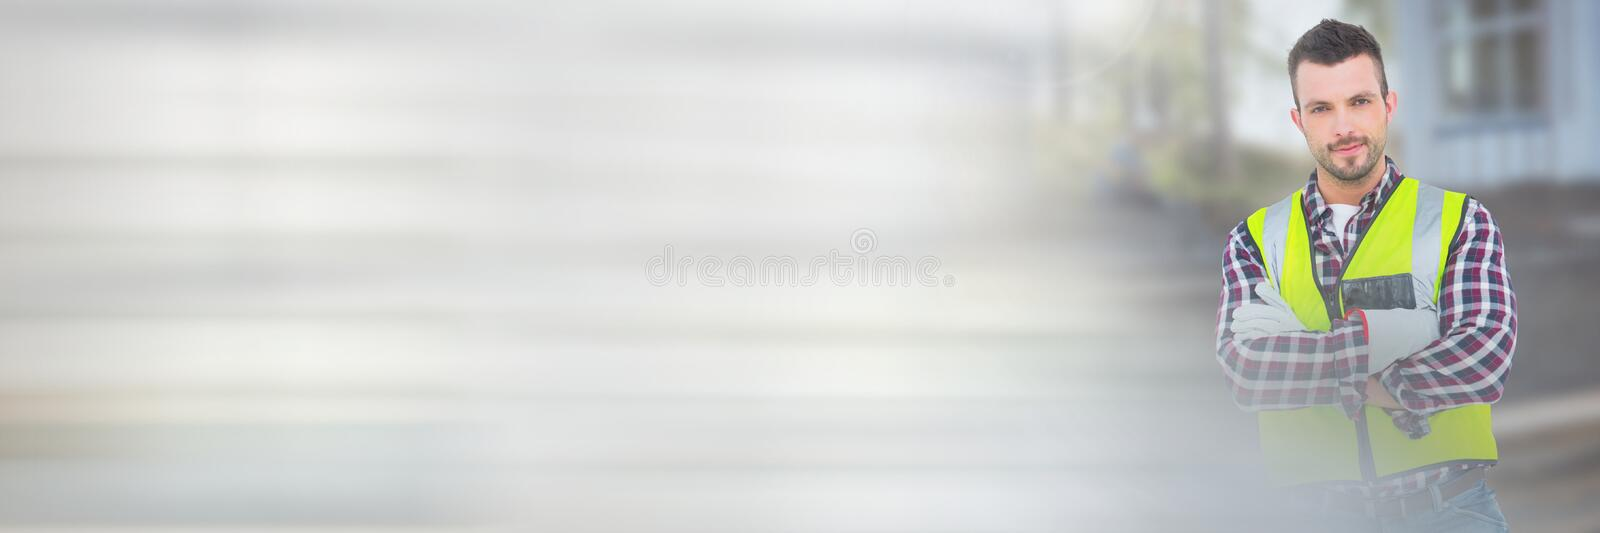 Construction Worker in front of construction site with transition effect stock photography